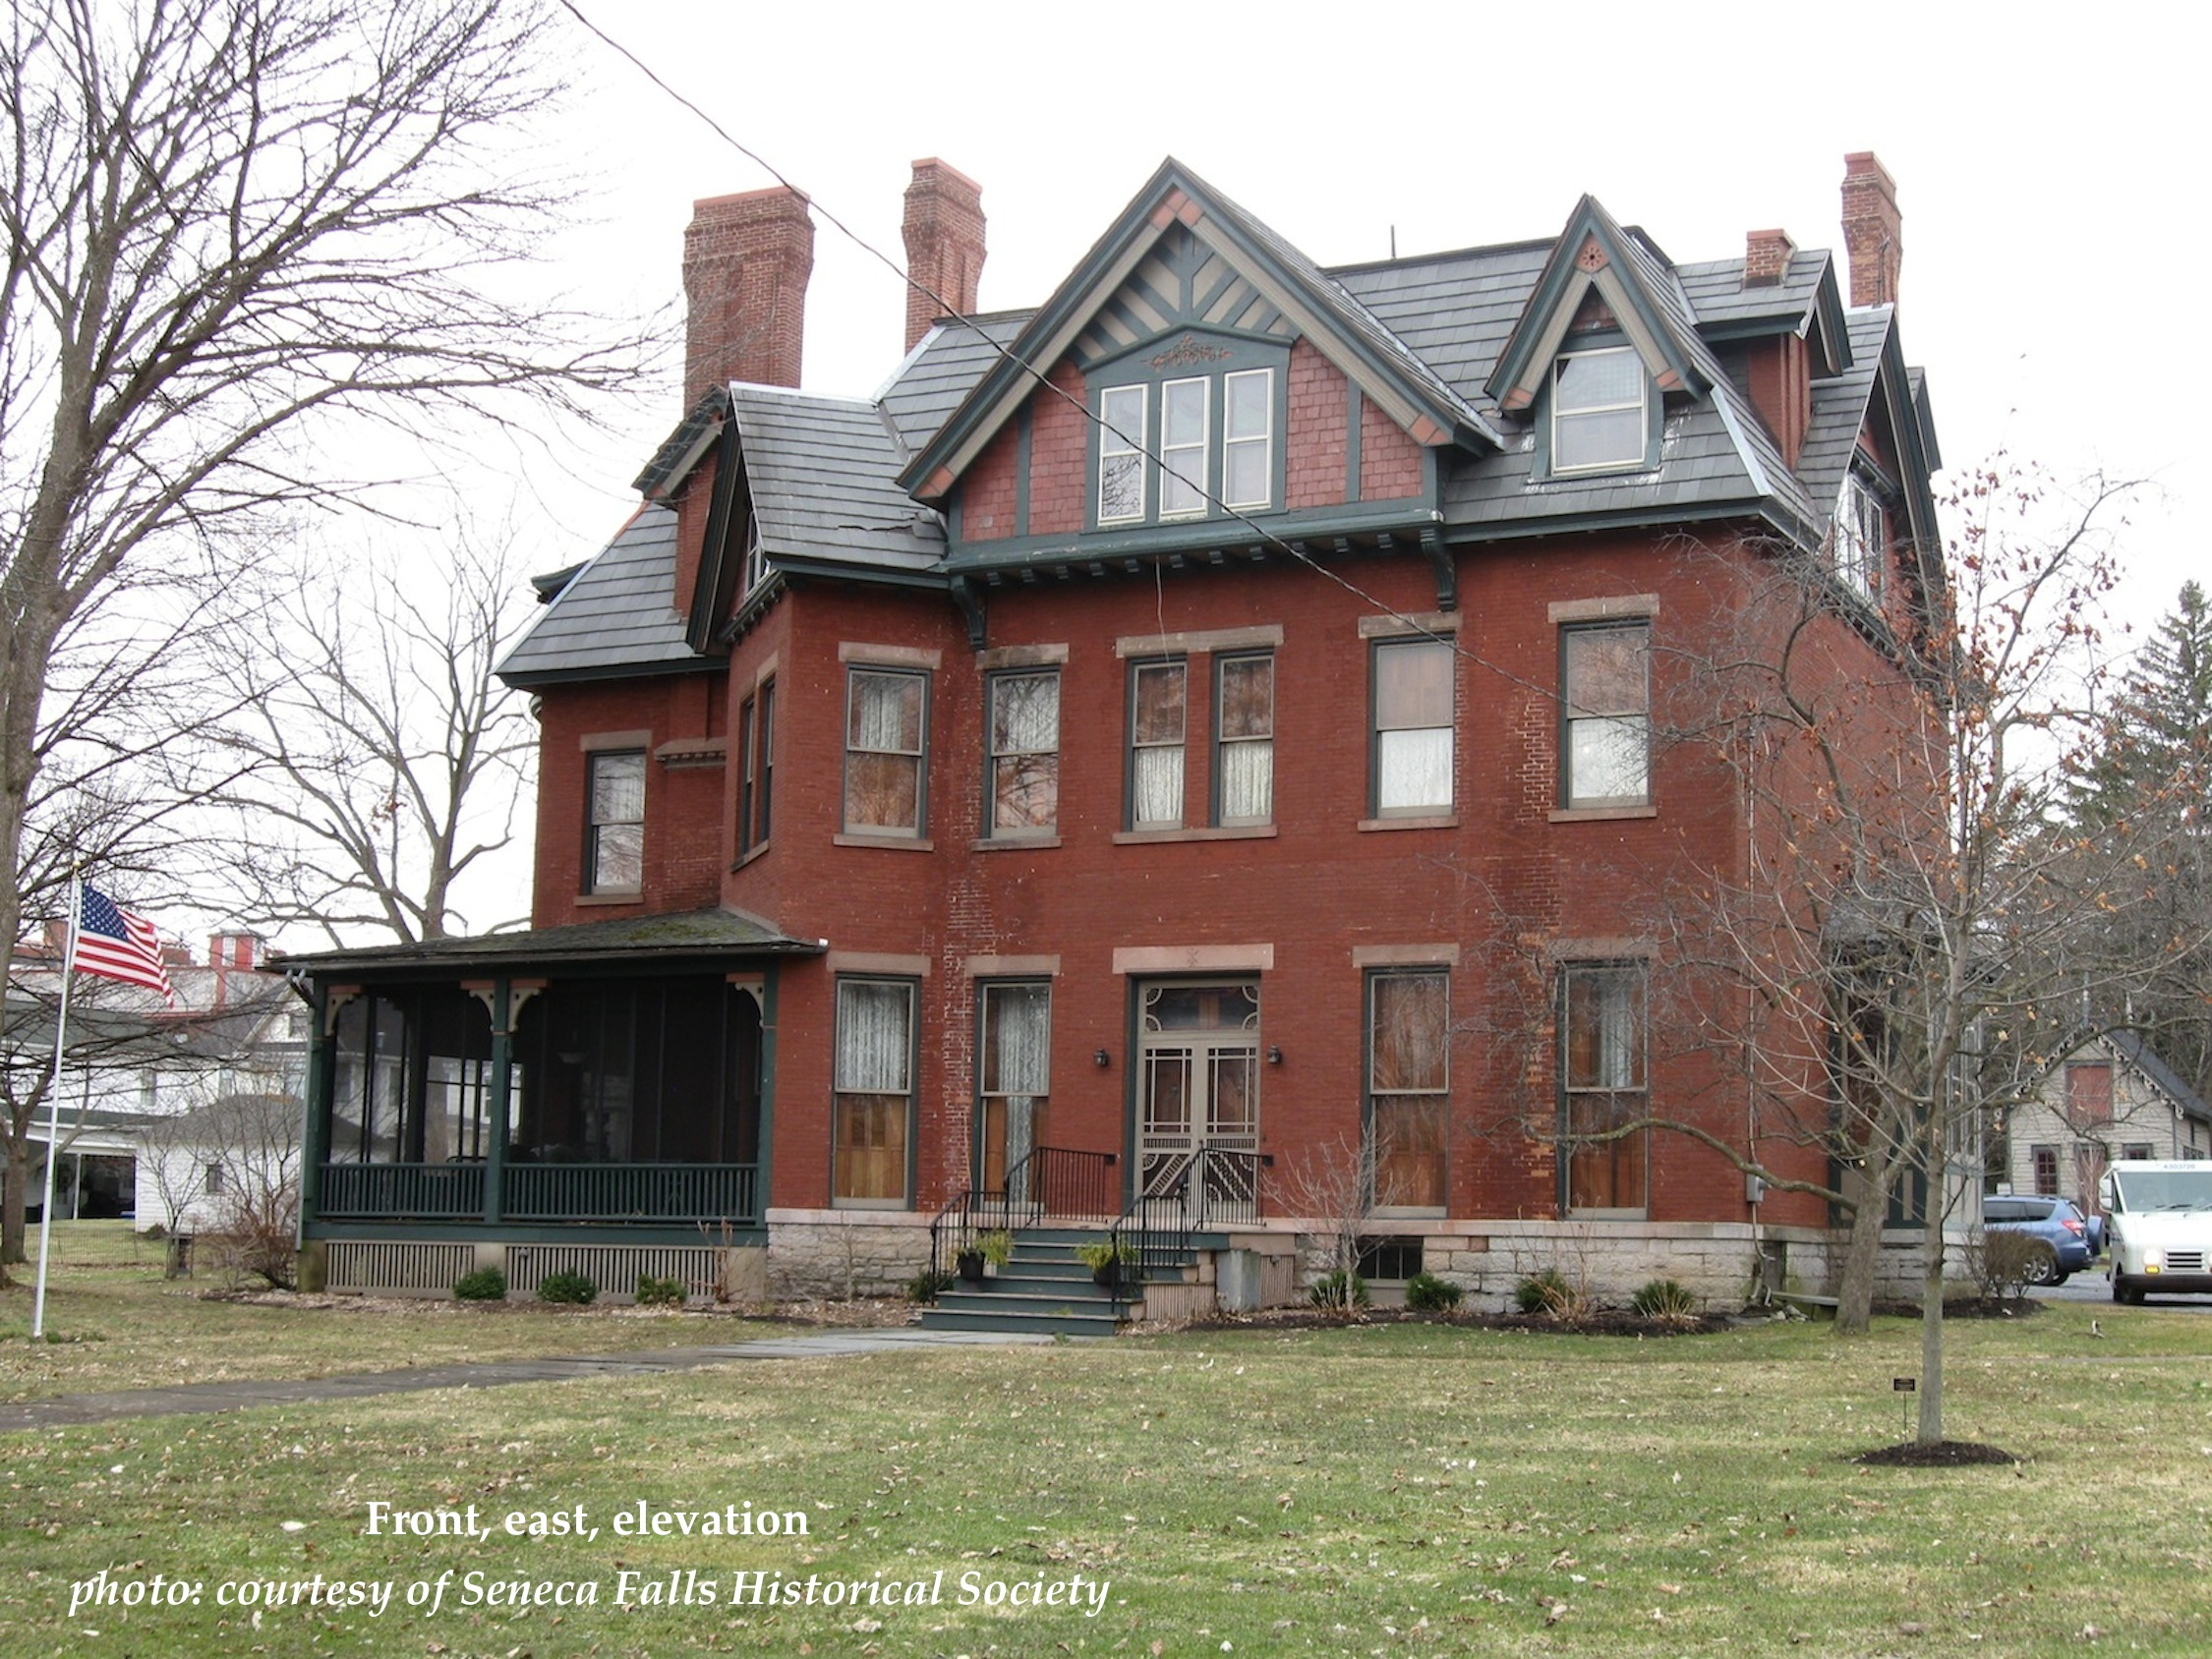 In 2015, the Seneca Falls Historical Society secured a $3,000 Technical Assistance Grant to support the cost of a condition survey of the 1855 Mynderse/Partridge/Becker House